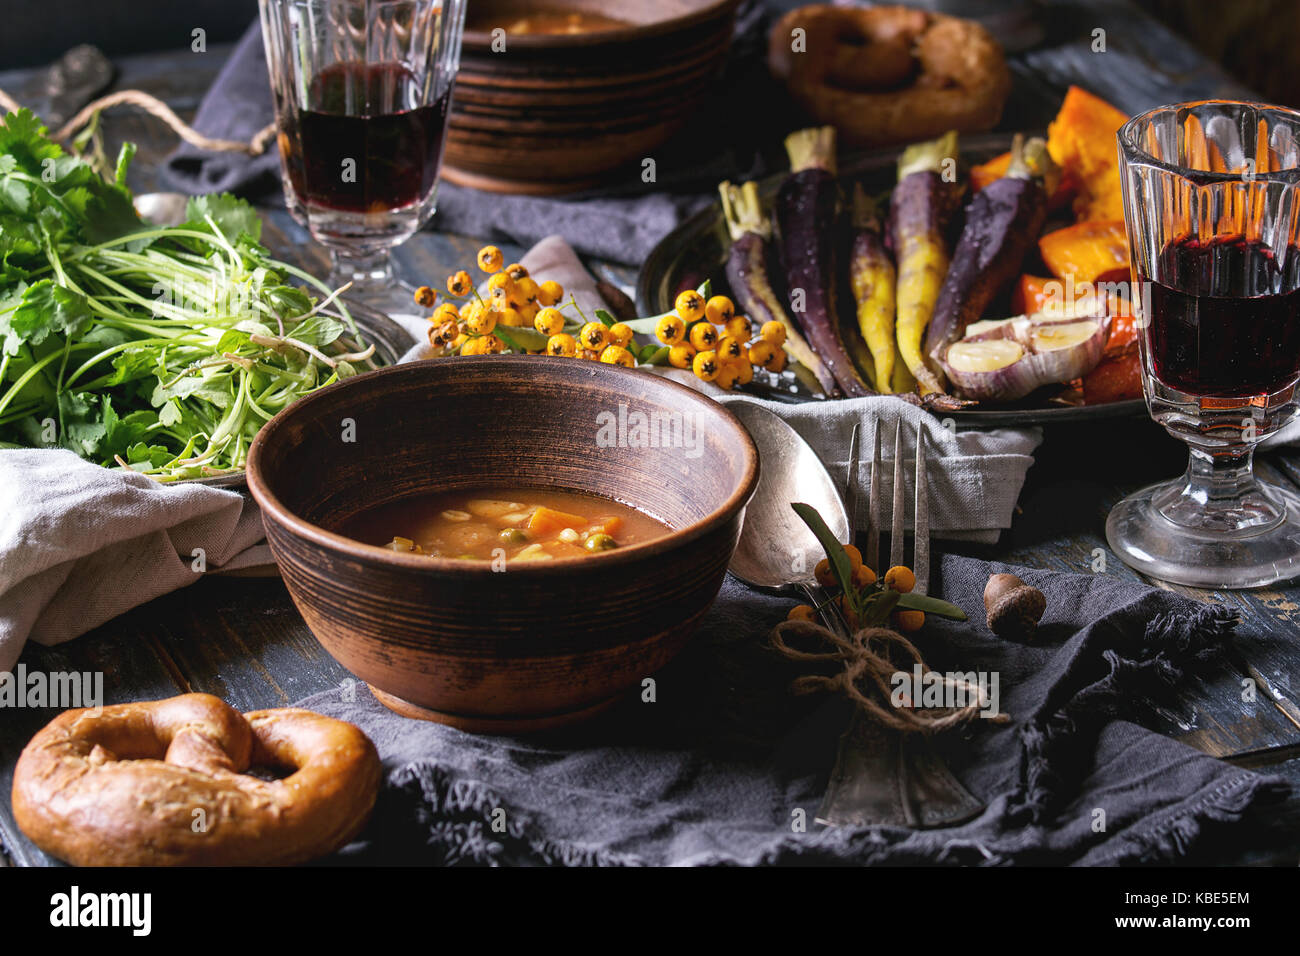 Holiday table decoration setting with bowls of hot soup, baking pumpkin, carrot, garlic, fresh coriander, pretzels Stock Photo